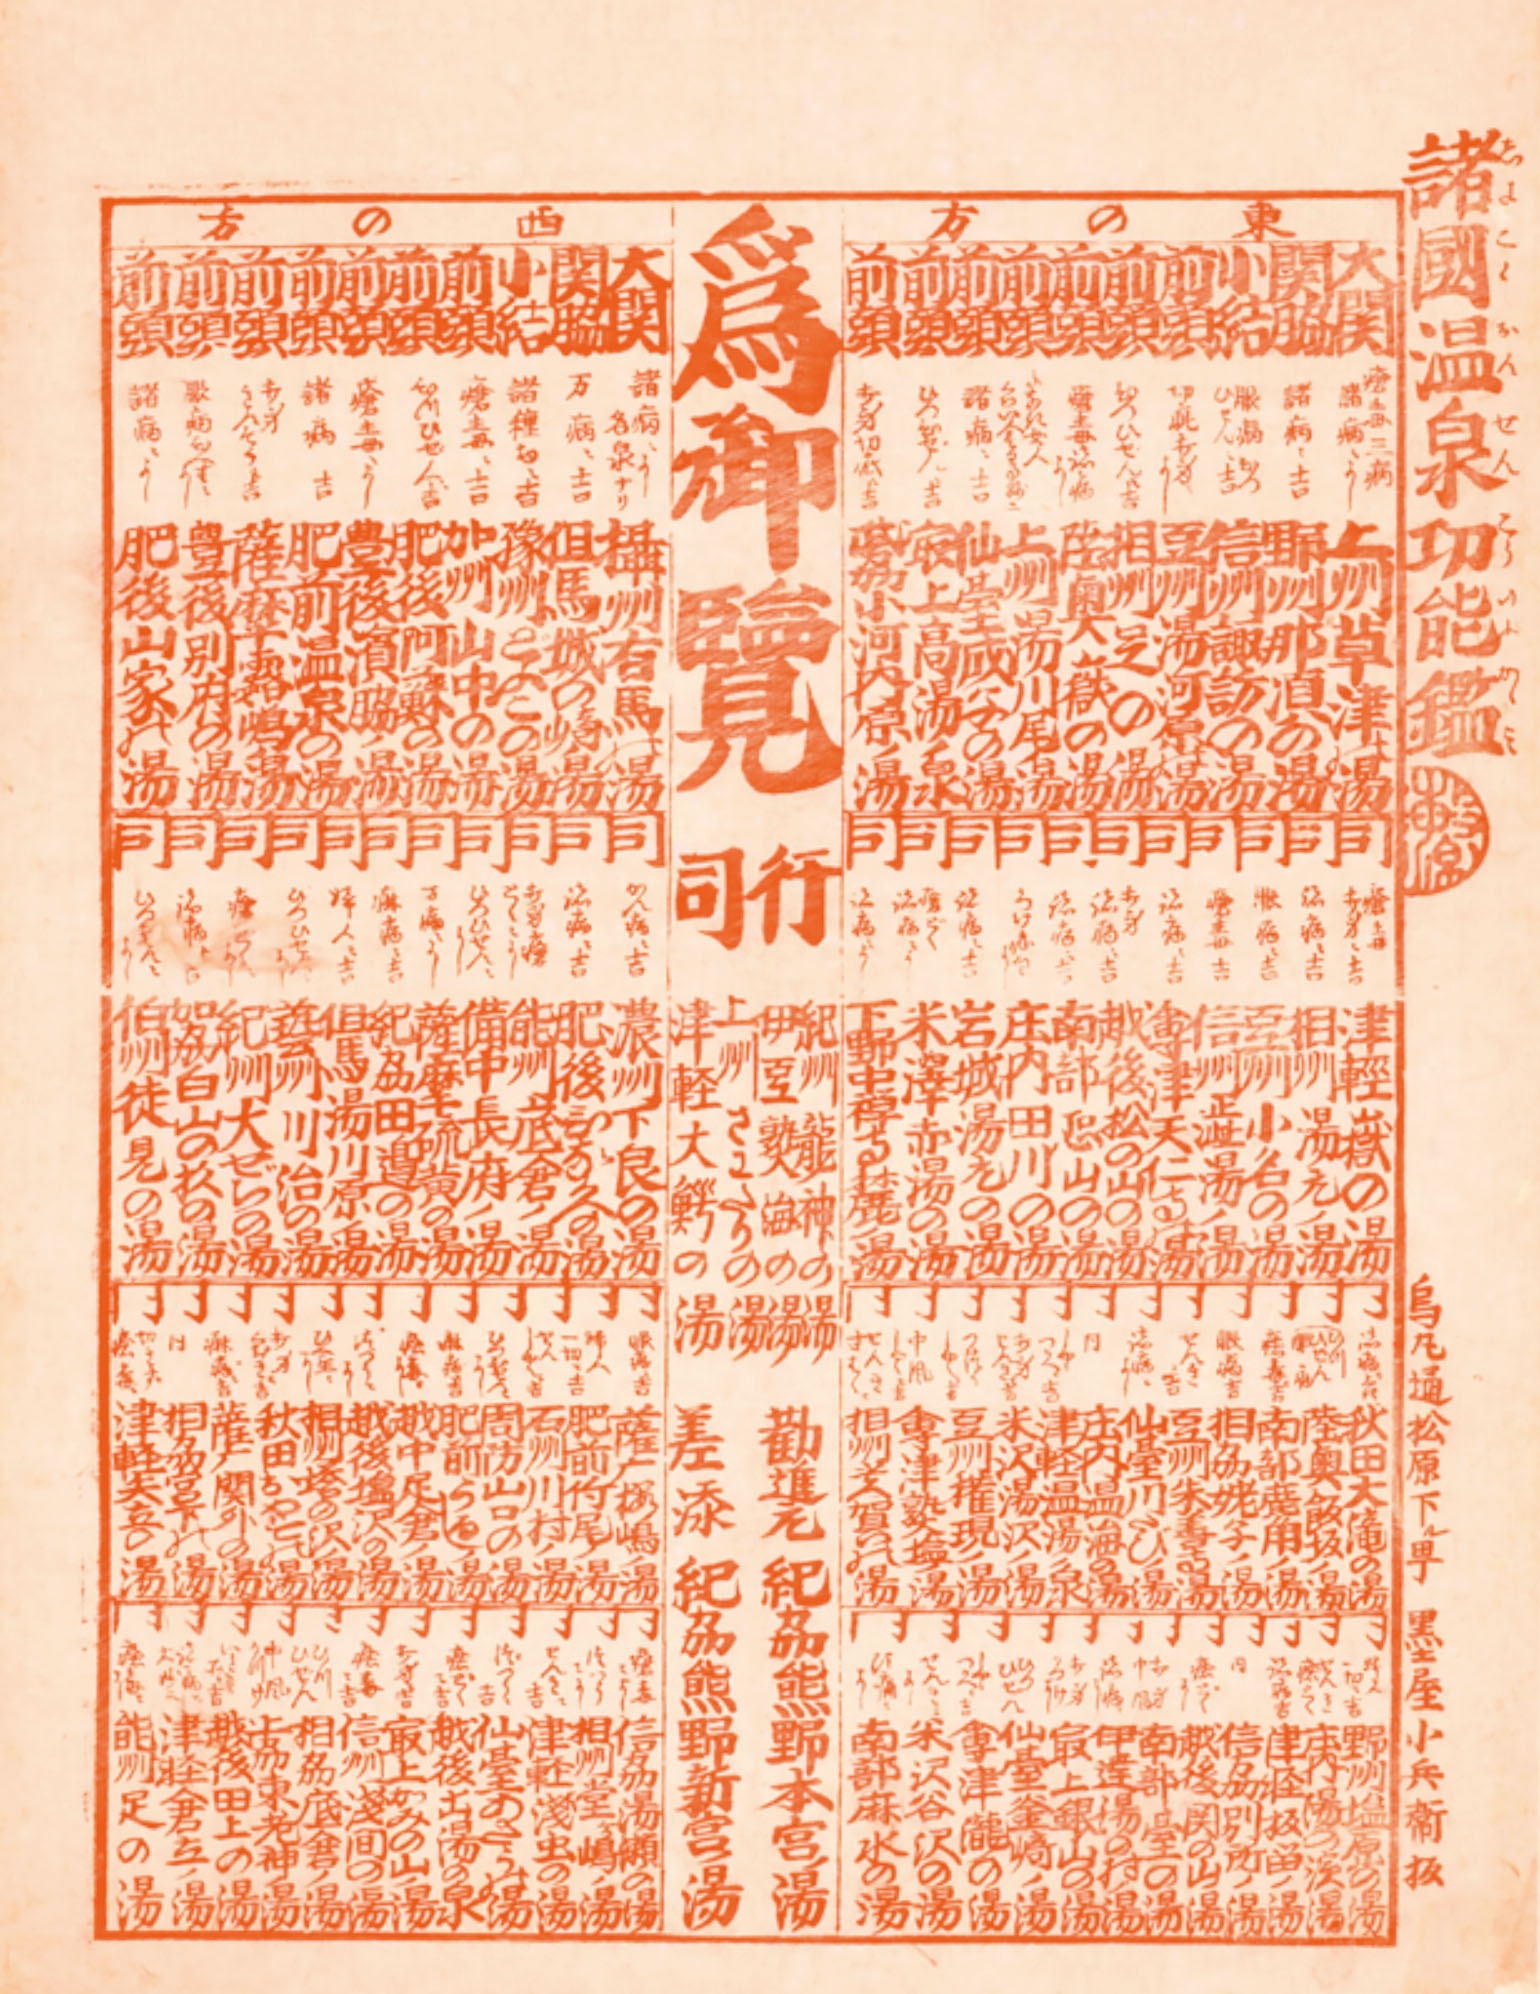 An Edo period document ranking the onsen of Japan by popularity through the East (Tokyo area) and West (Kyoto area).